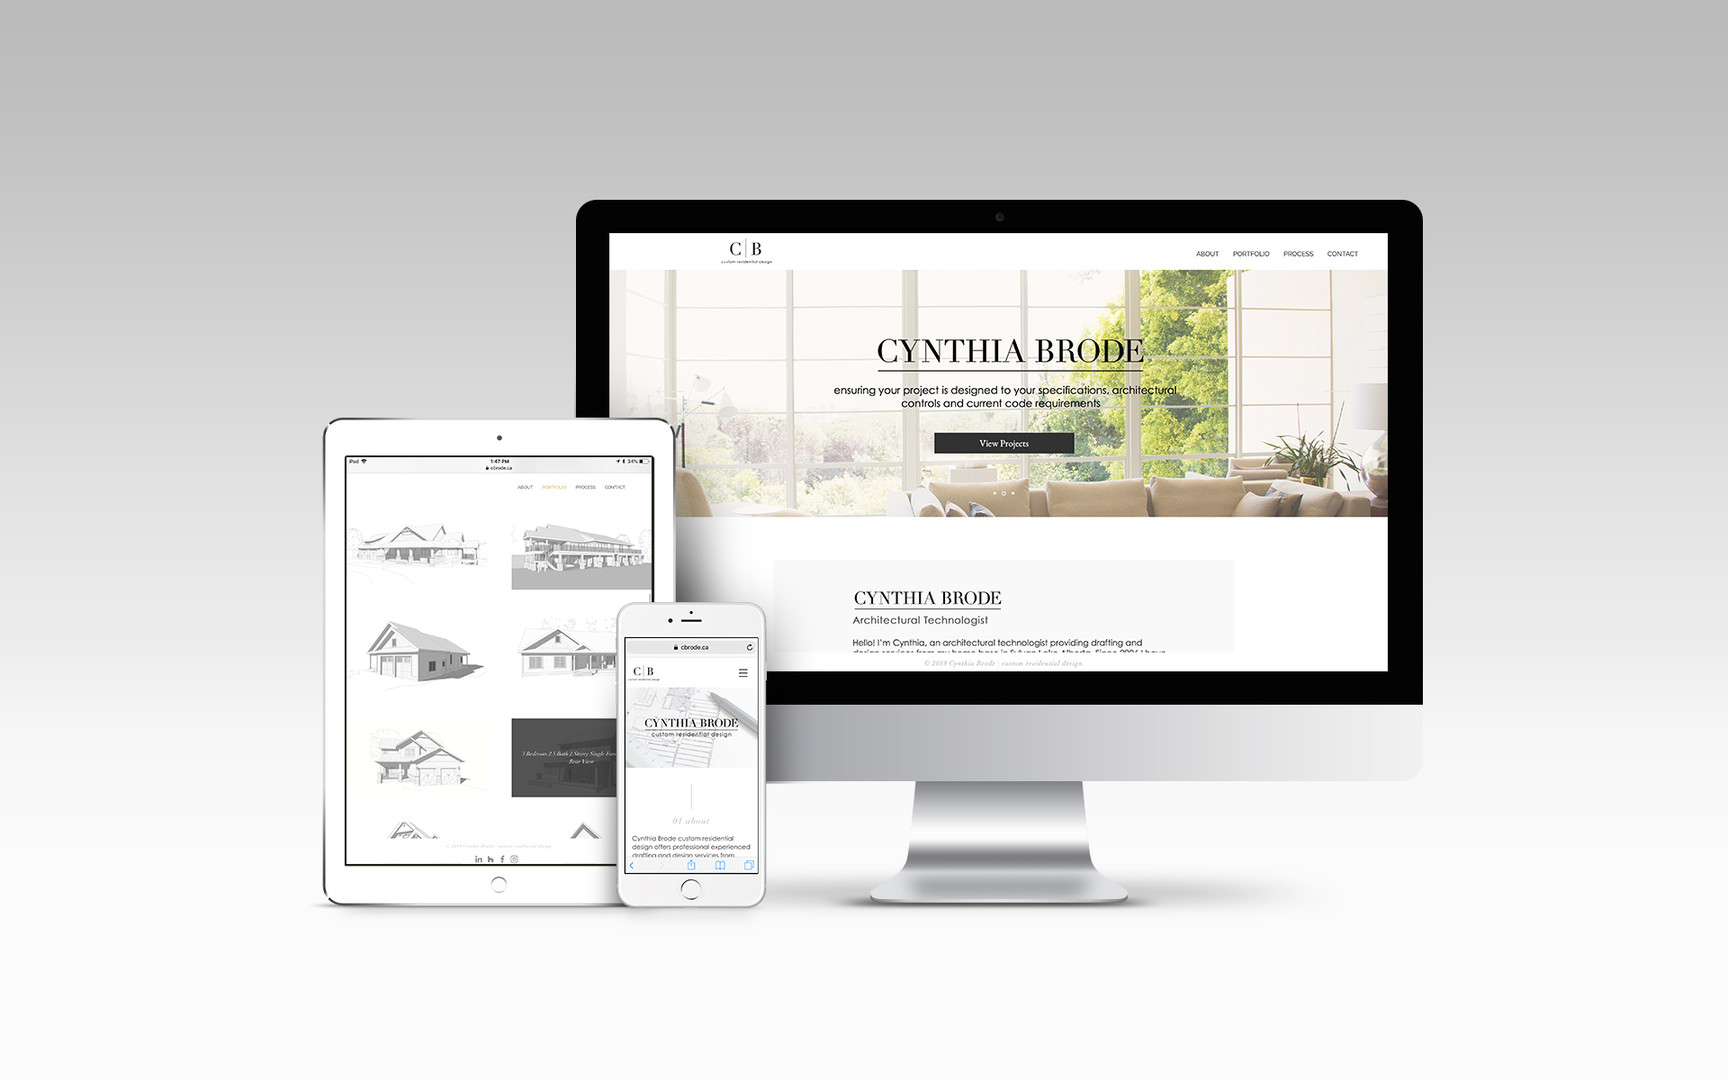 cynthia_brode_website.jpg